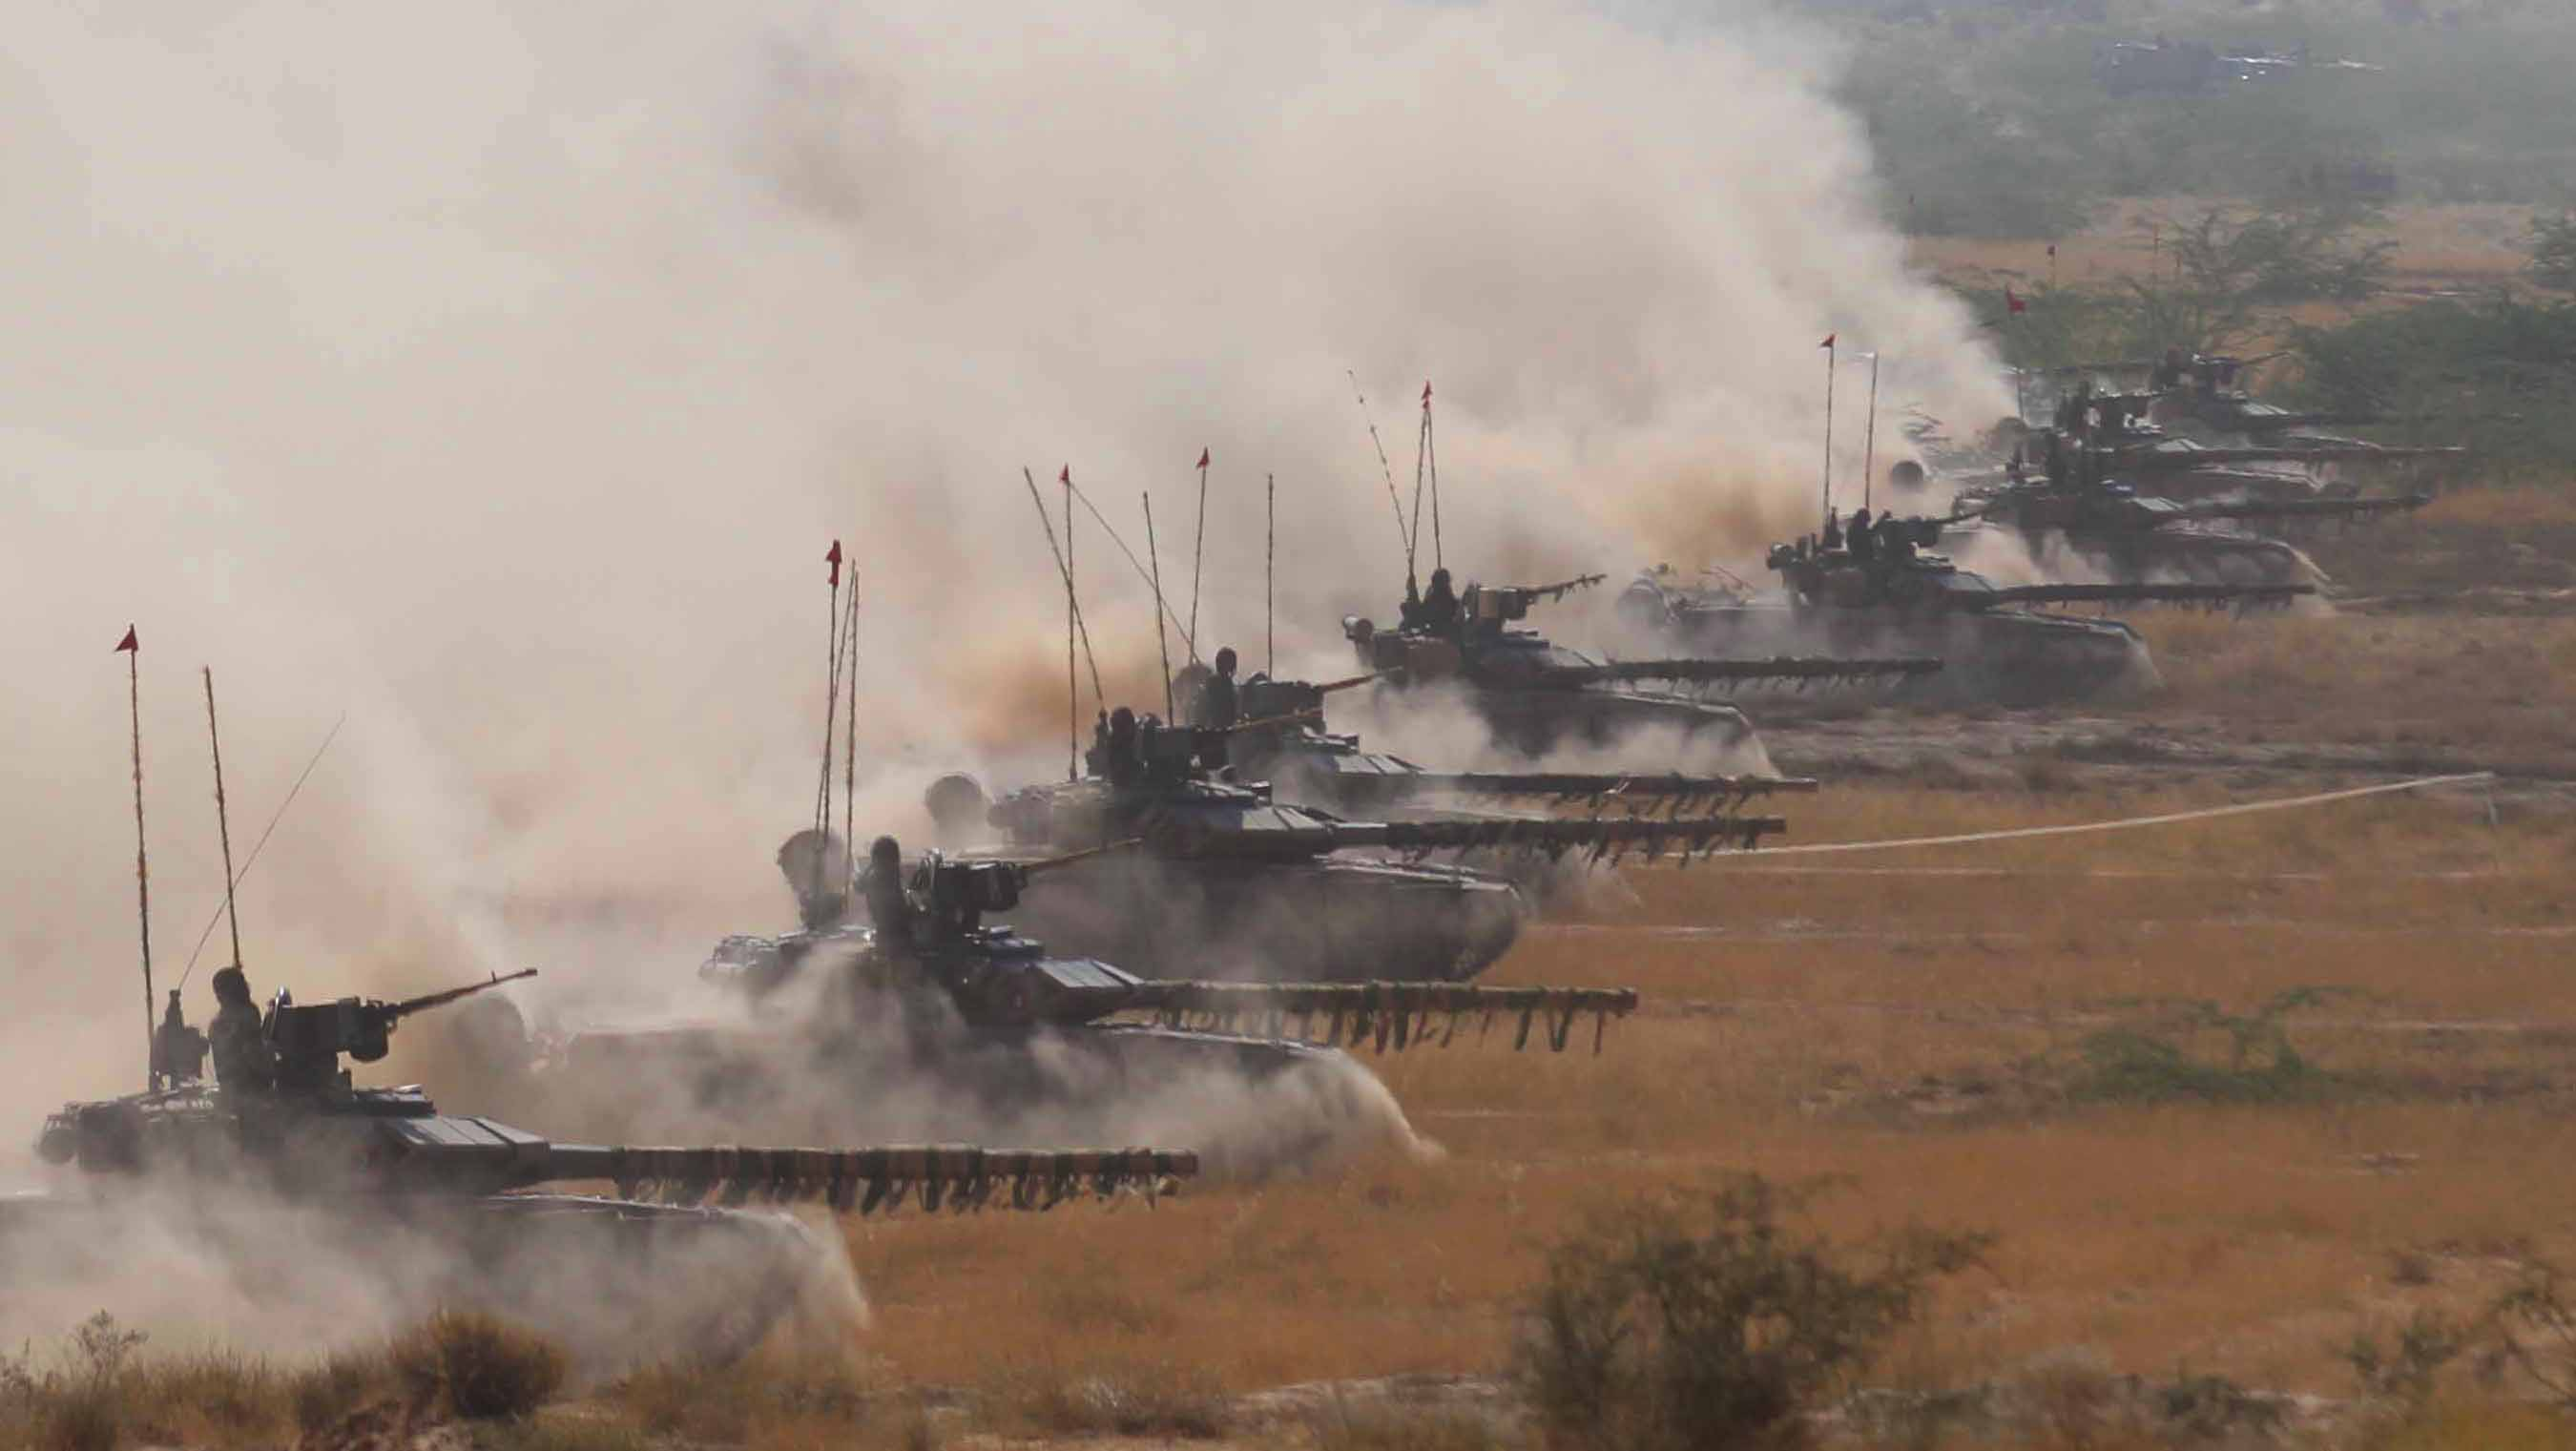 T-90 tanks participate in the Sudershan Shakt exercise in Rajasthan in 2011. Source: Getty Images